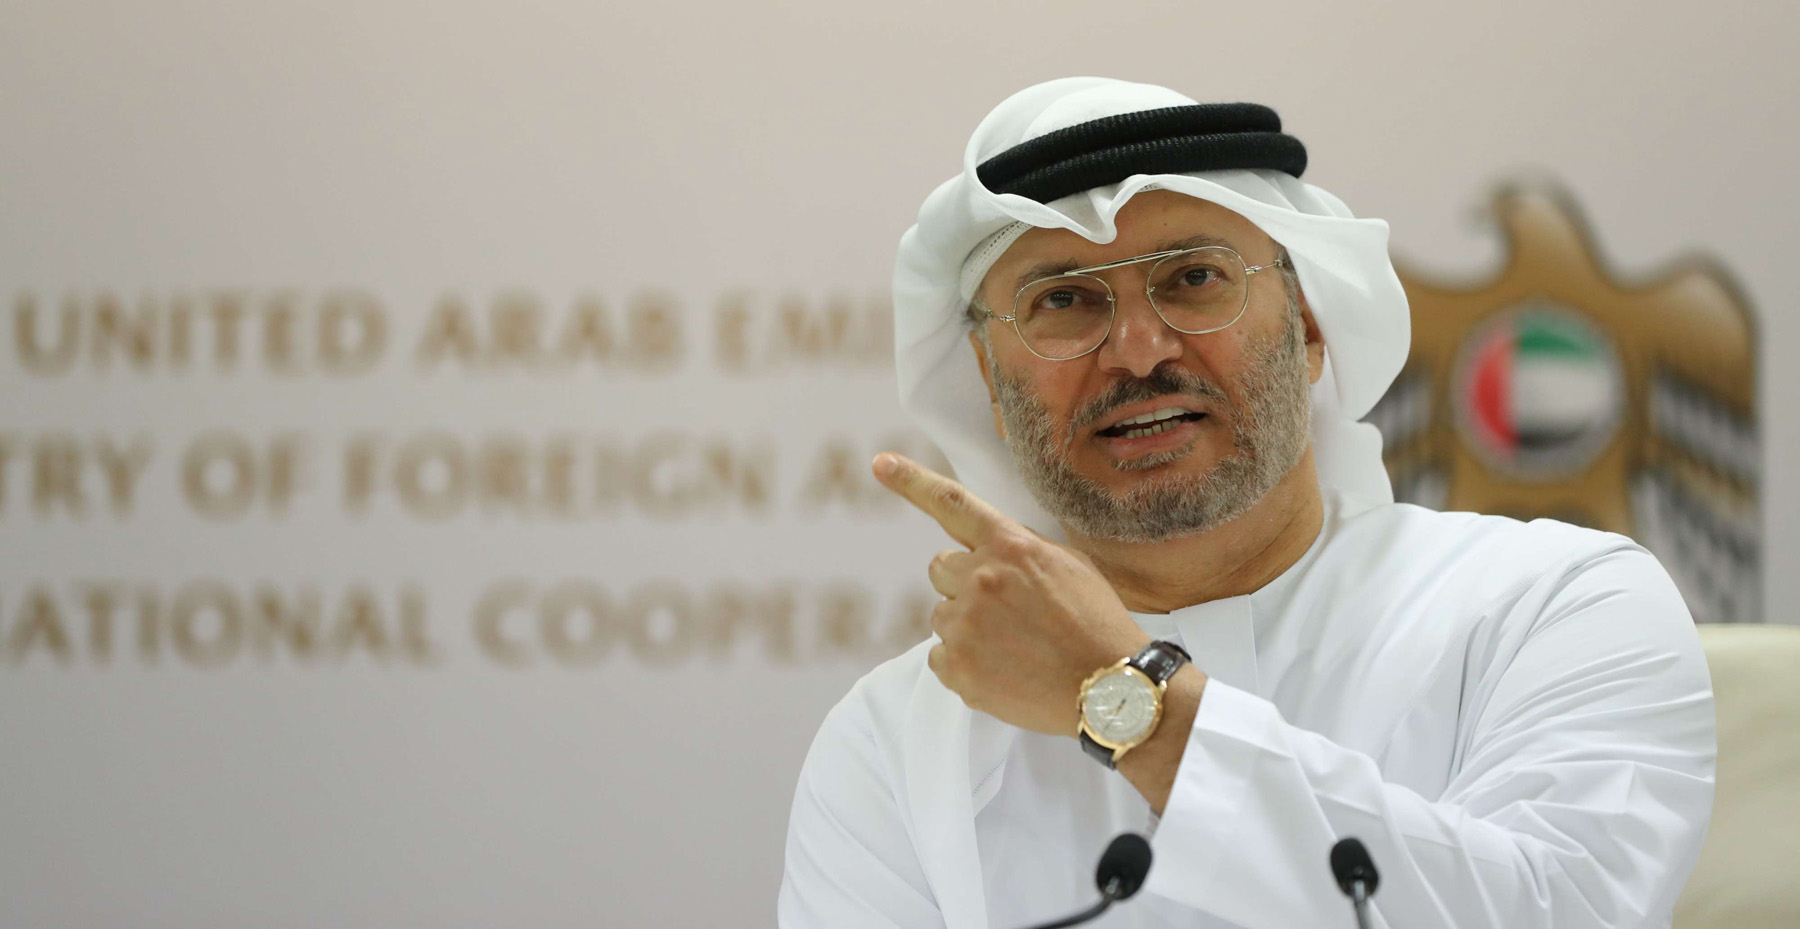 Emirati Minister of State for Foreign Affairs Anwar Gargash speaks during a press conference in Dubai. (AFP)